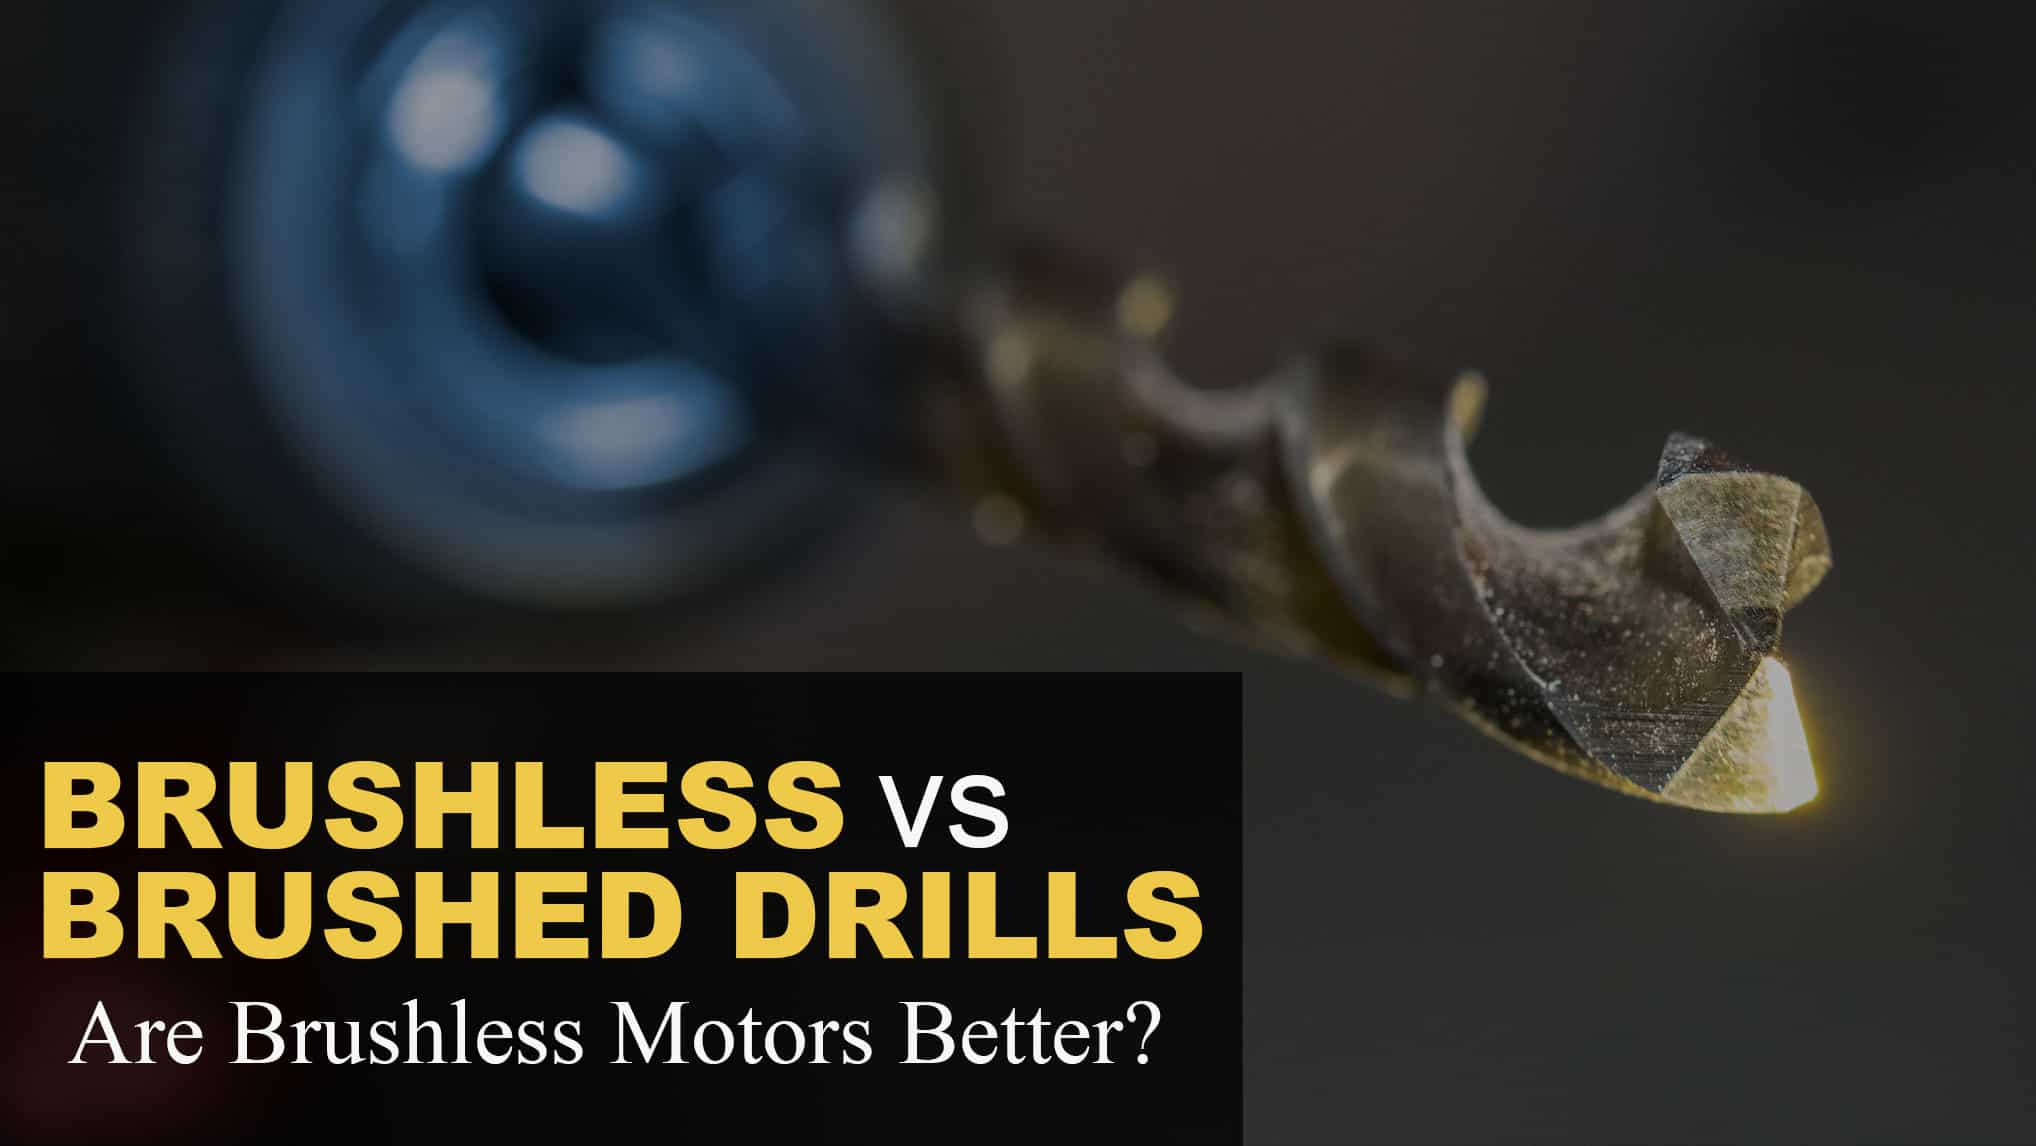 Brushless vs Brushed Drills: Are Brushless Motors Better?